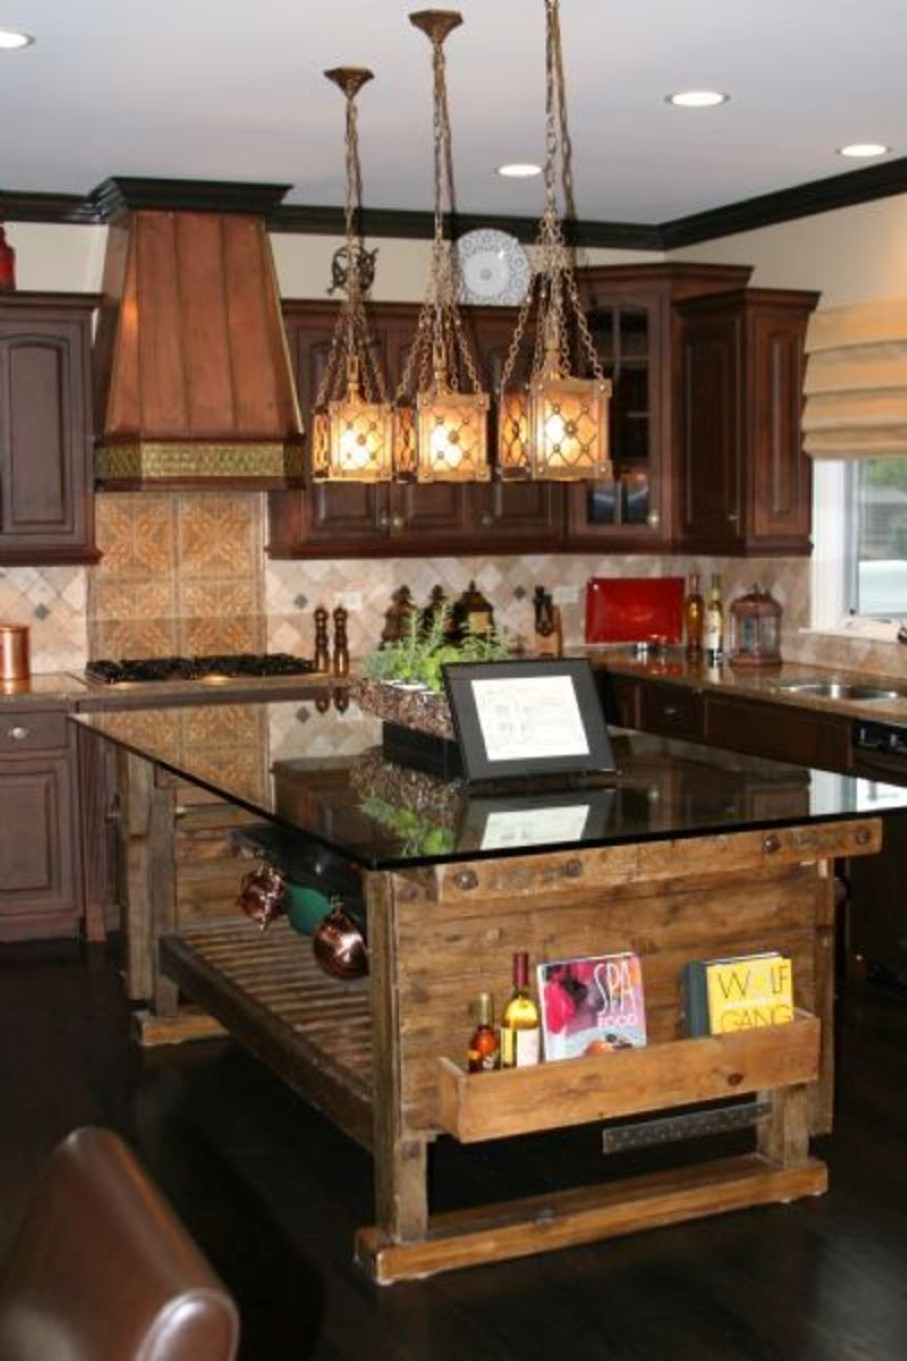 Home Interior Designs For Kitchens: Sweet Country Rustic Kitchen Idea